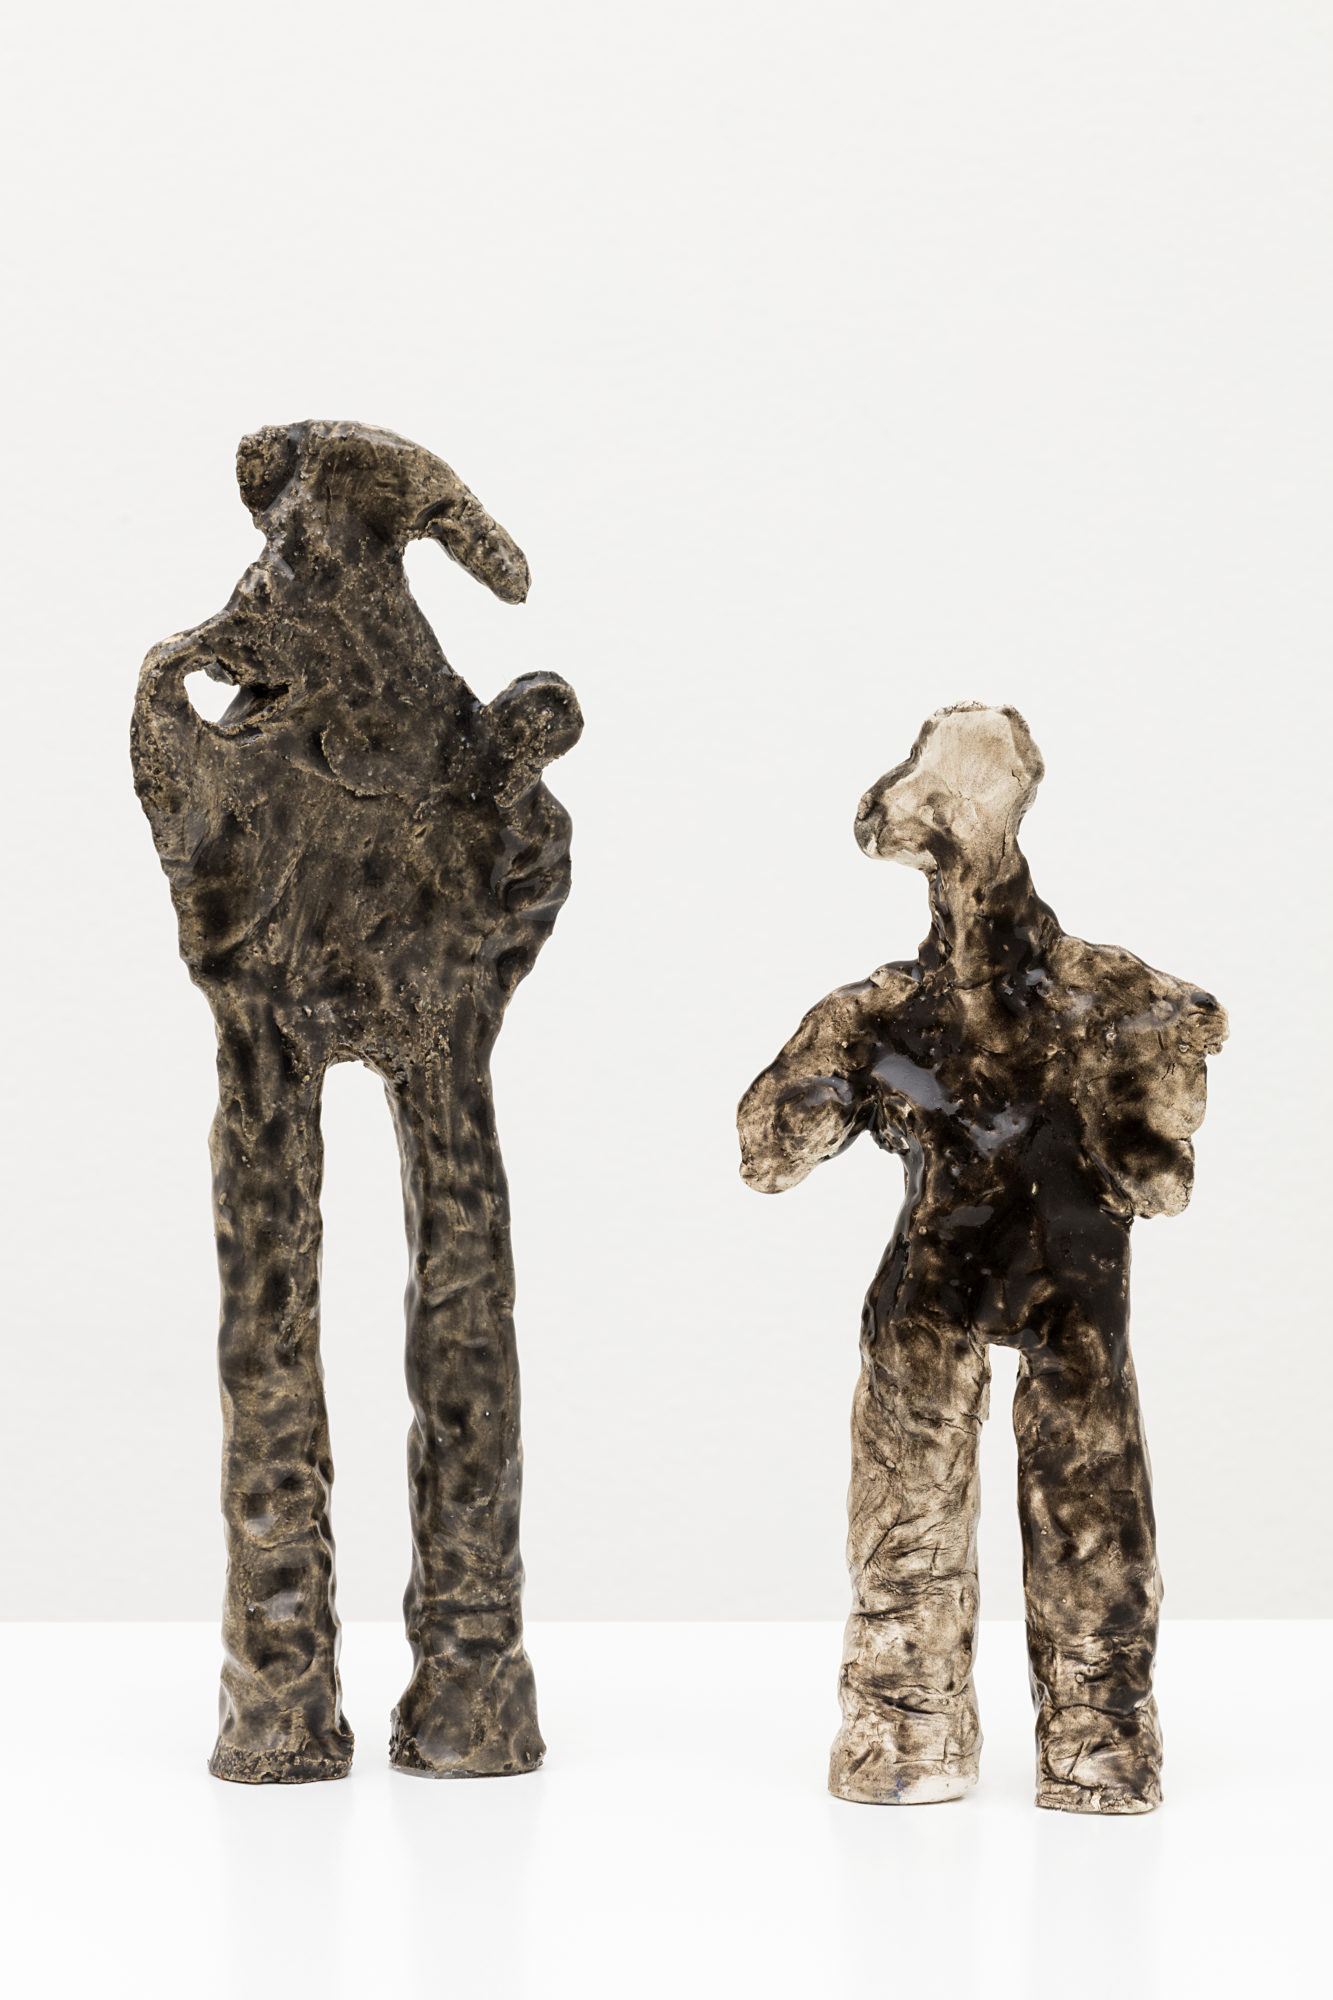 "Simone Fattal. ""Man and his shadow."" 2009. Glazed stoneware. 9.8 x 4.3 x 1.6 in. (25 x 11 x 4 cm). Courtesy of the artist and kaufmann repetto, Milan / New York; Balice Hertling, Paris; Karma International, Zurich / Los Angeles"